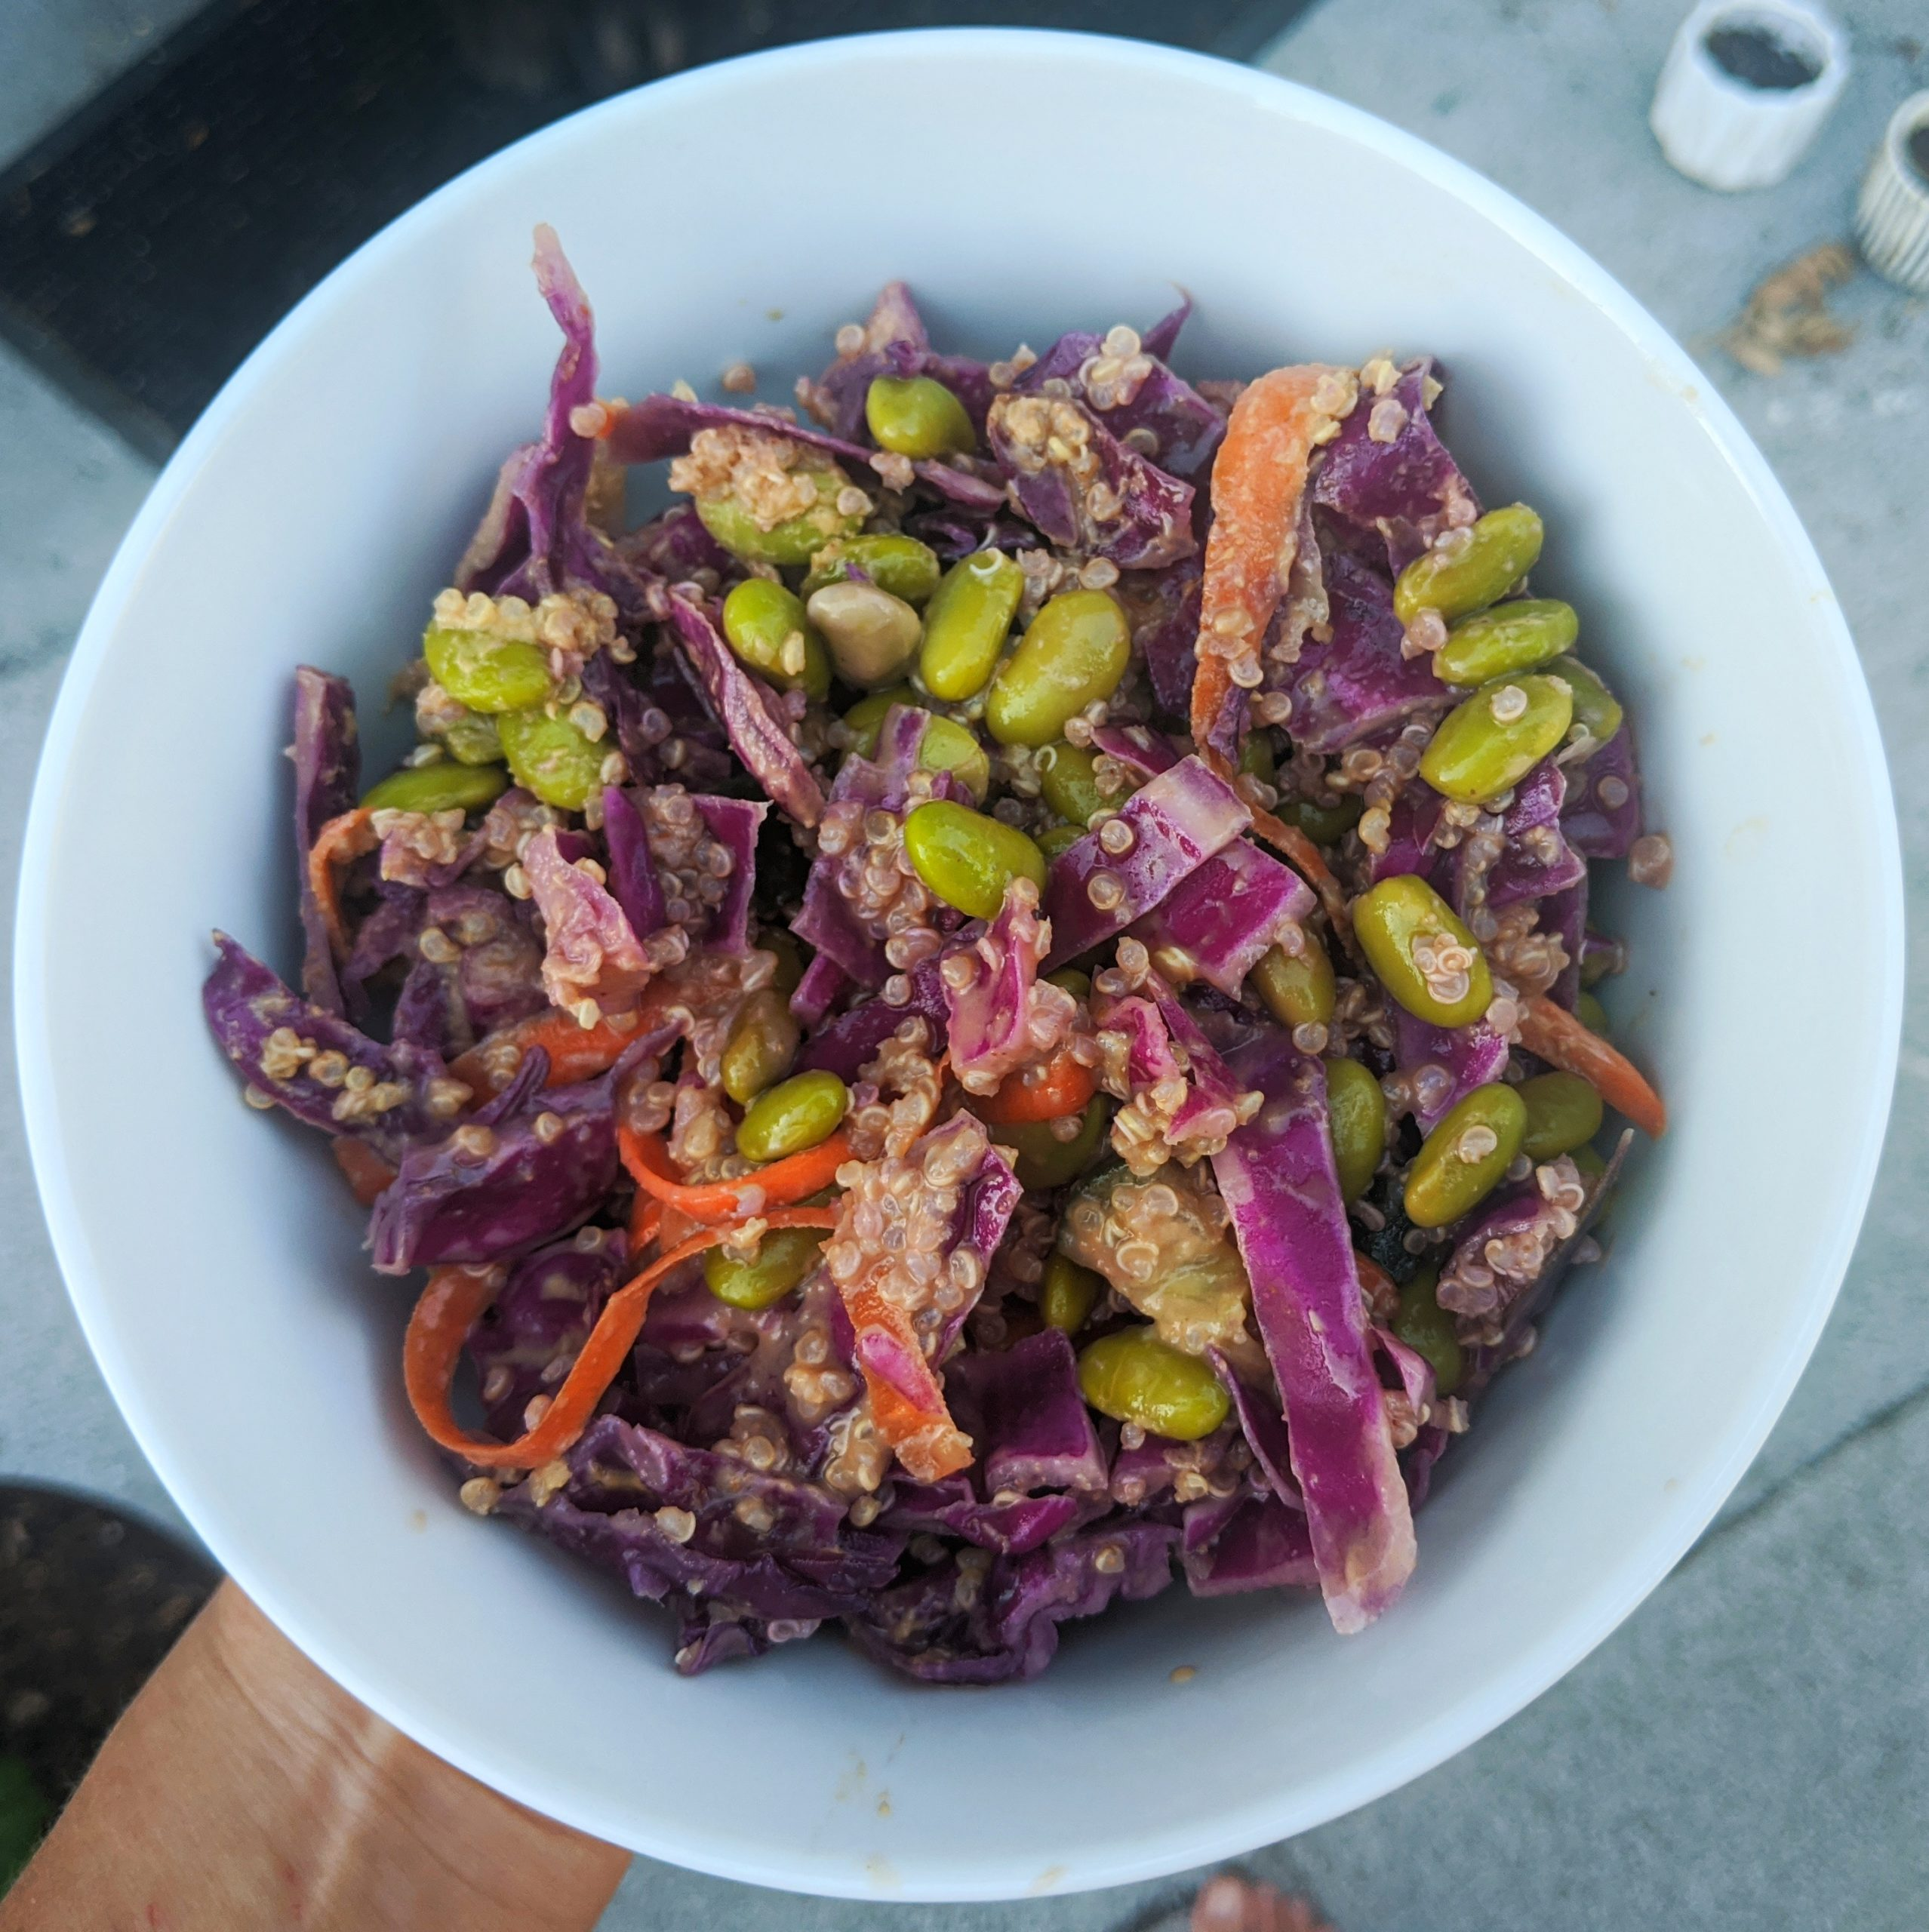 Purple Cabbage and Edamame Salad with Peanut Sauce